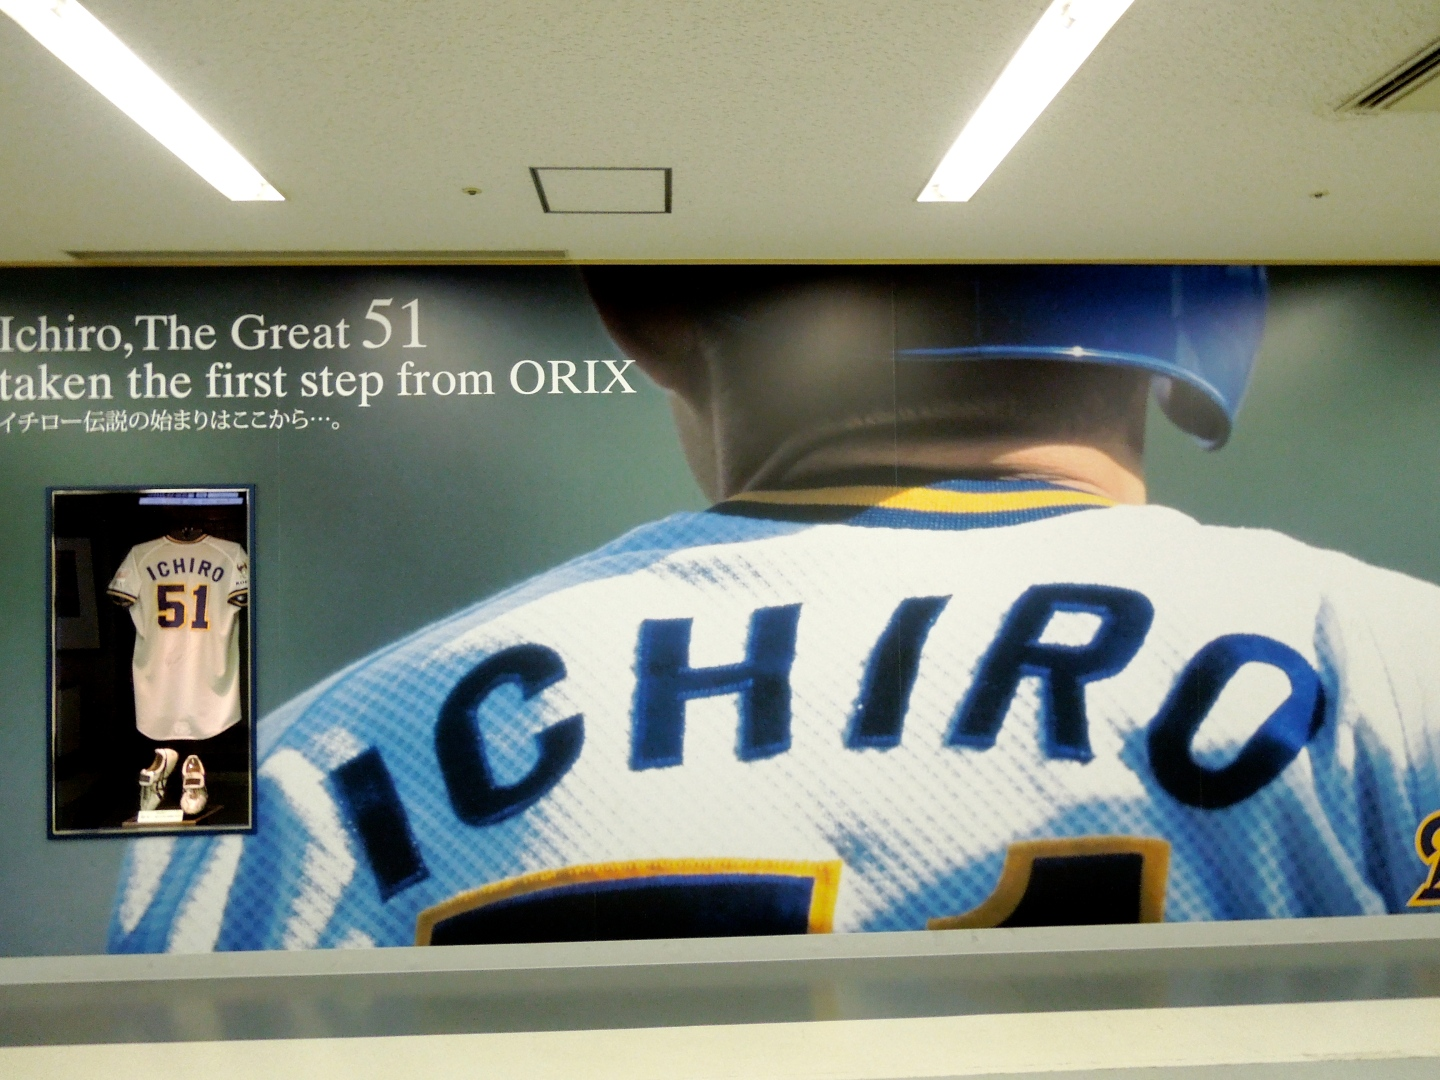 Ichiro played for Orix before signing in the US